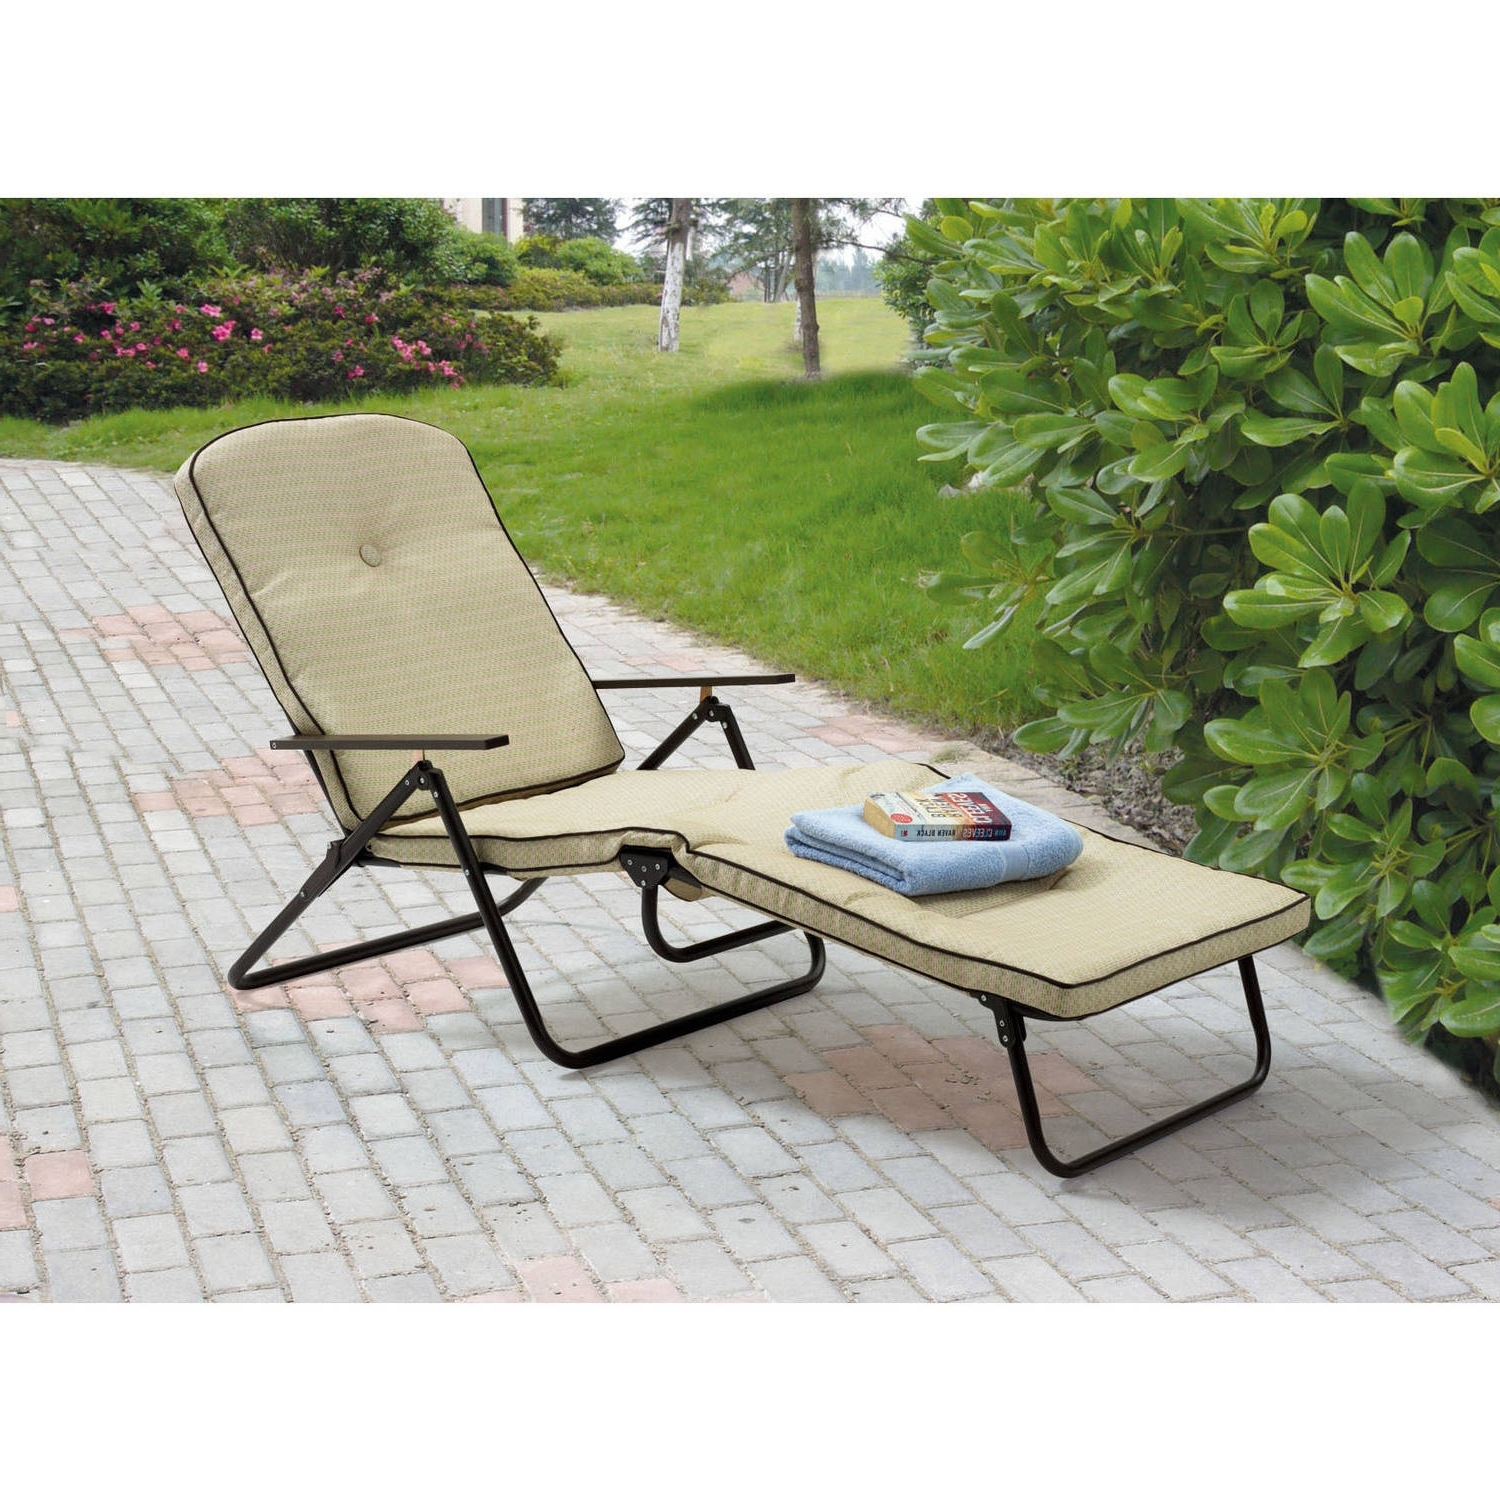 Mainstays Sand Dune Outdoor Padded Folding Chaise Lounge, Tan With Regard To 2018 Outdoor Folding Chaise Lounges (View 4 of 15)